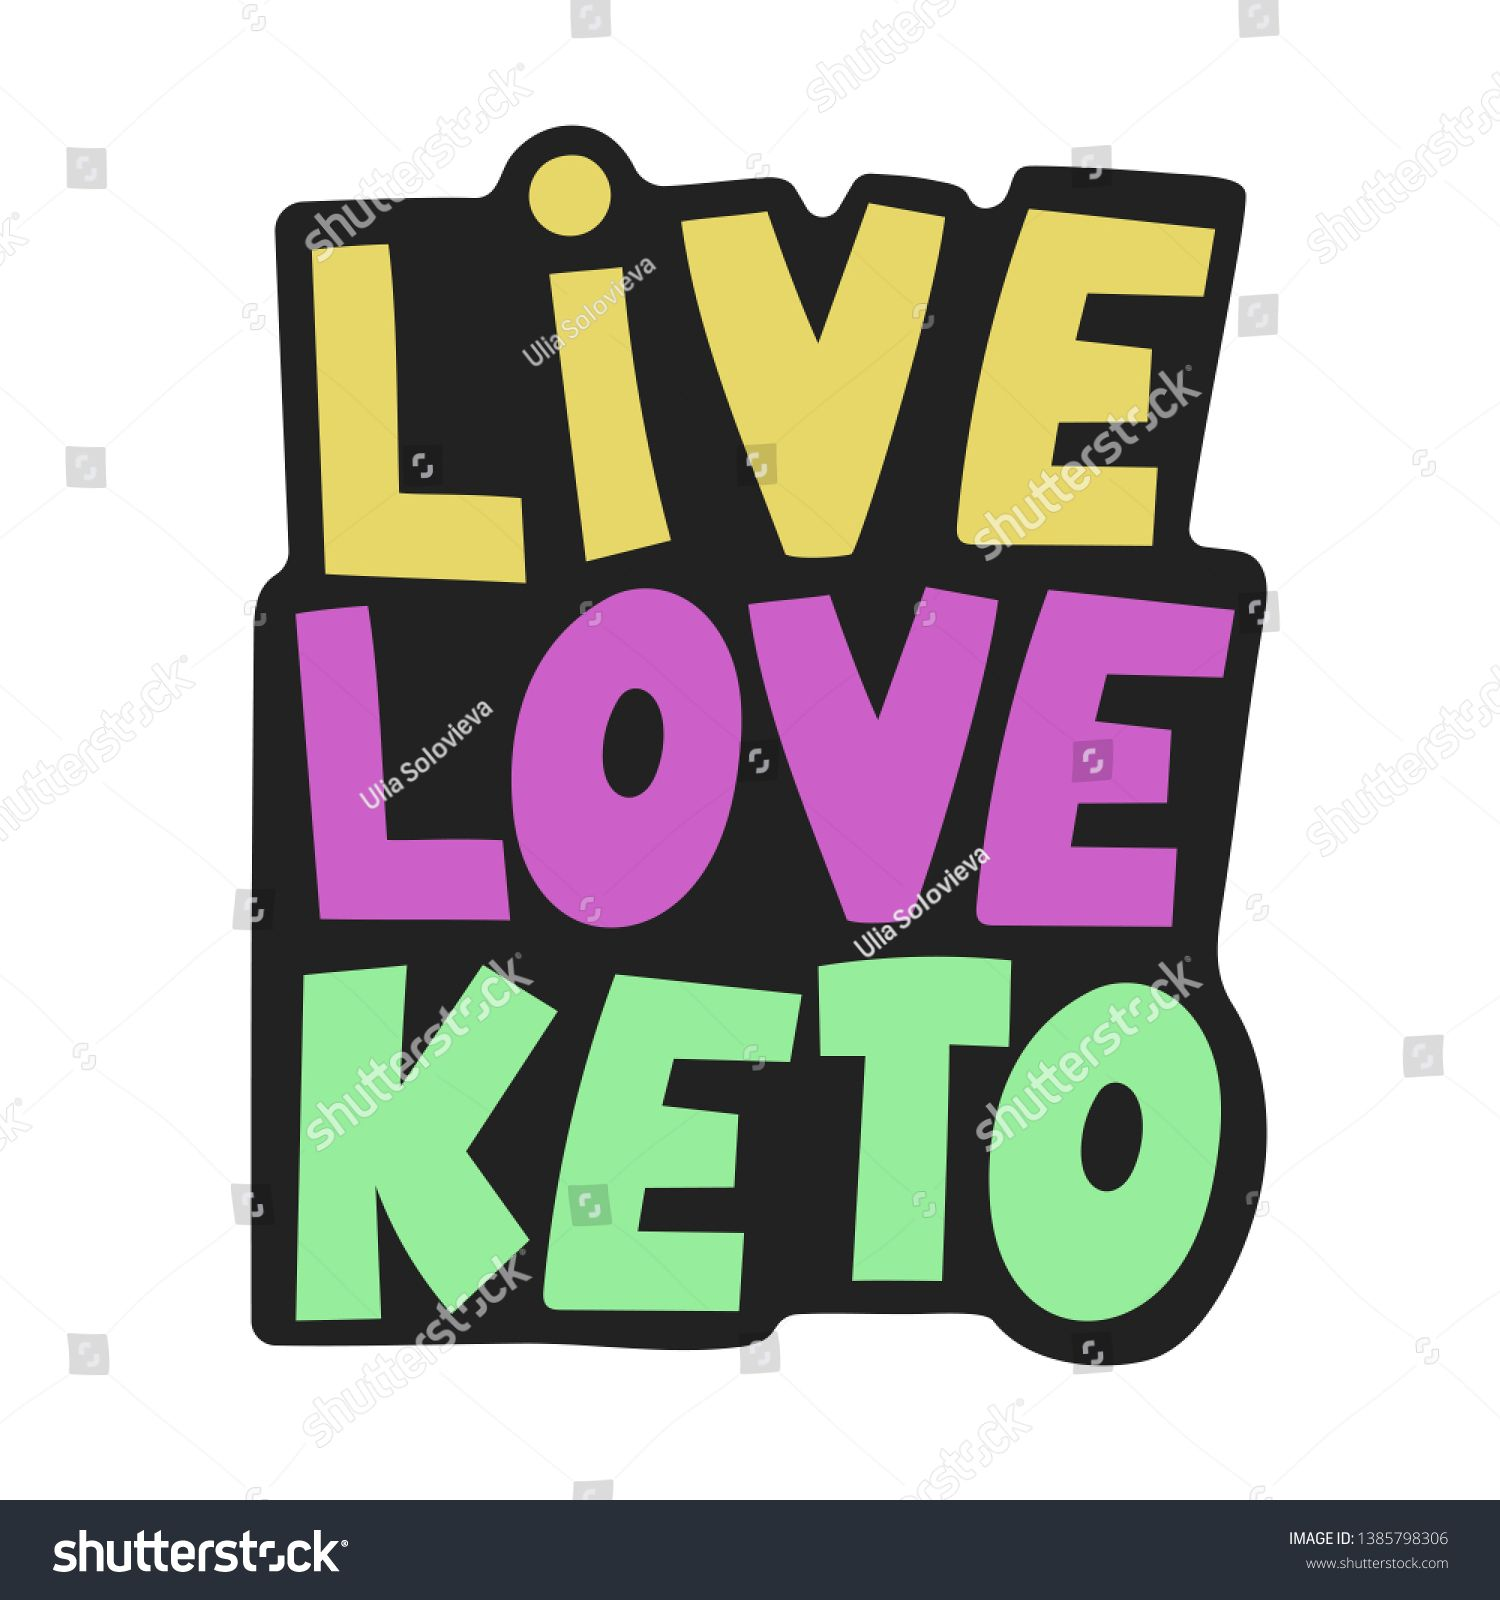 keto diet is how i live